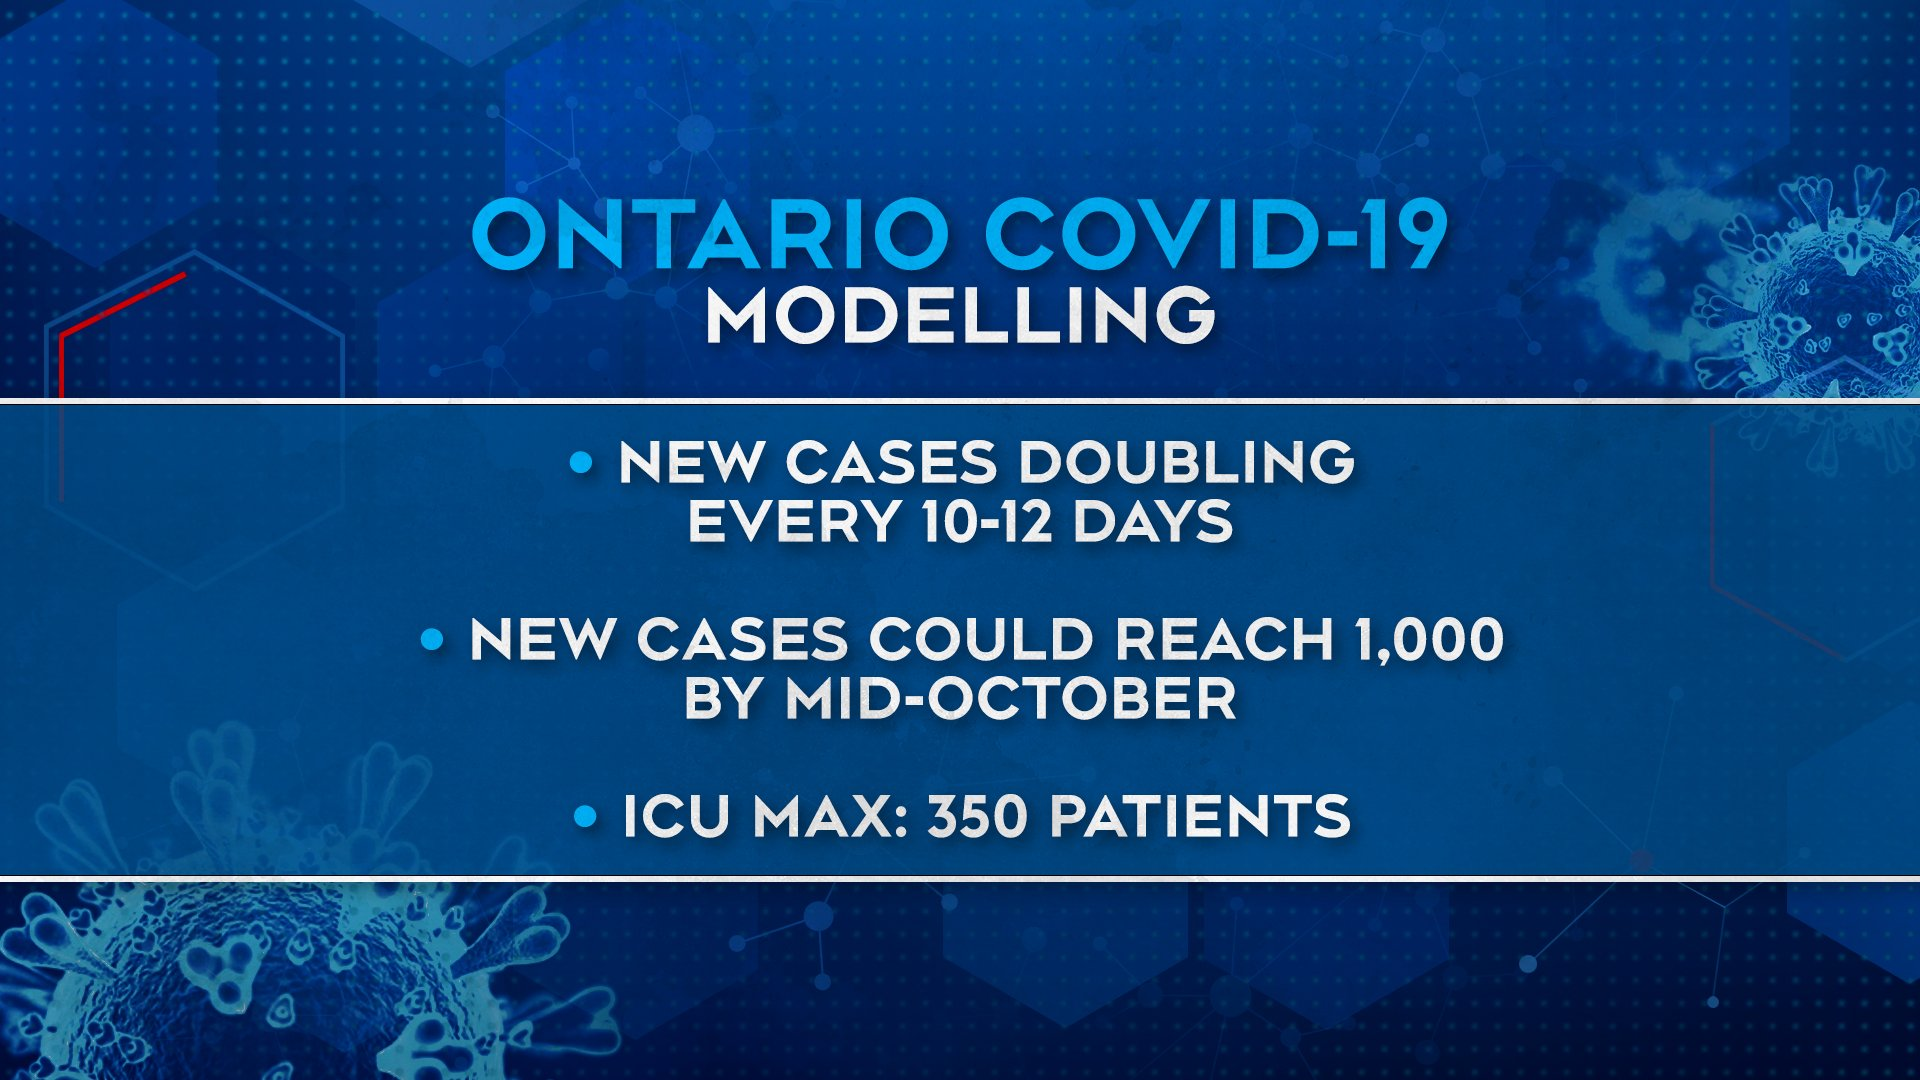 Ctv Ottawa On Twitter New Modelling Data Upward Trajectory In Covid 19 In Recent Weeks Cases Currently Doubling Every 10 12 Days At That Rate Daily Case Counts Could Hit 1 000 Day By Mid Oct